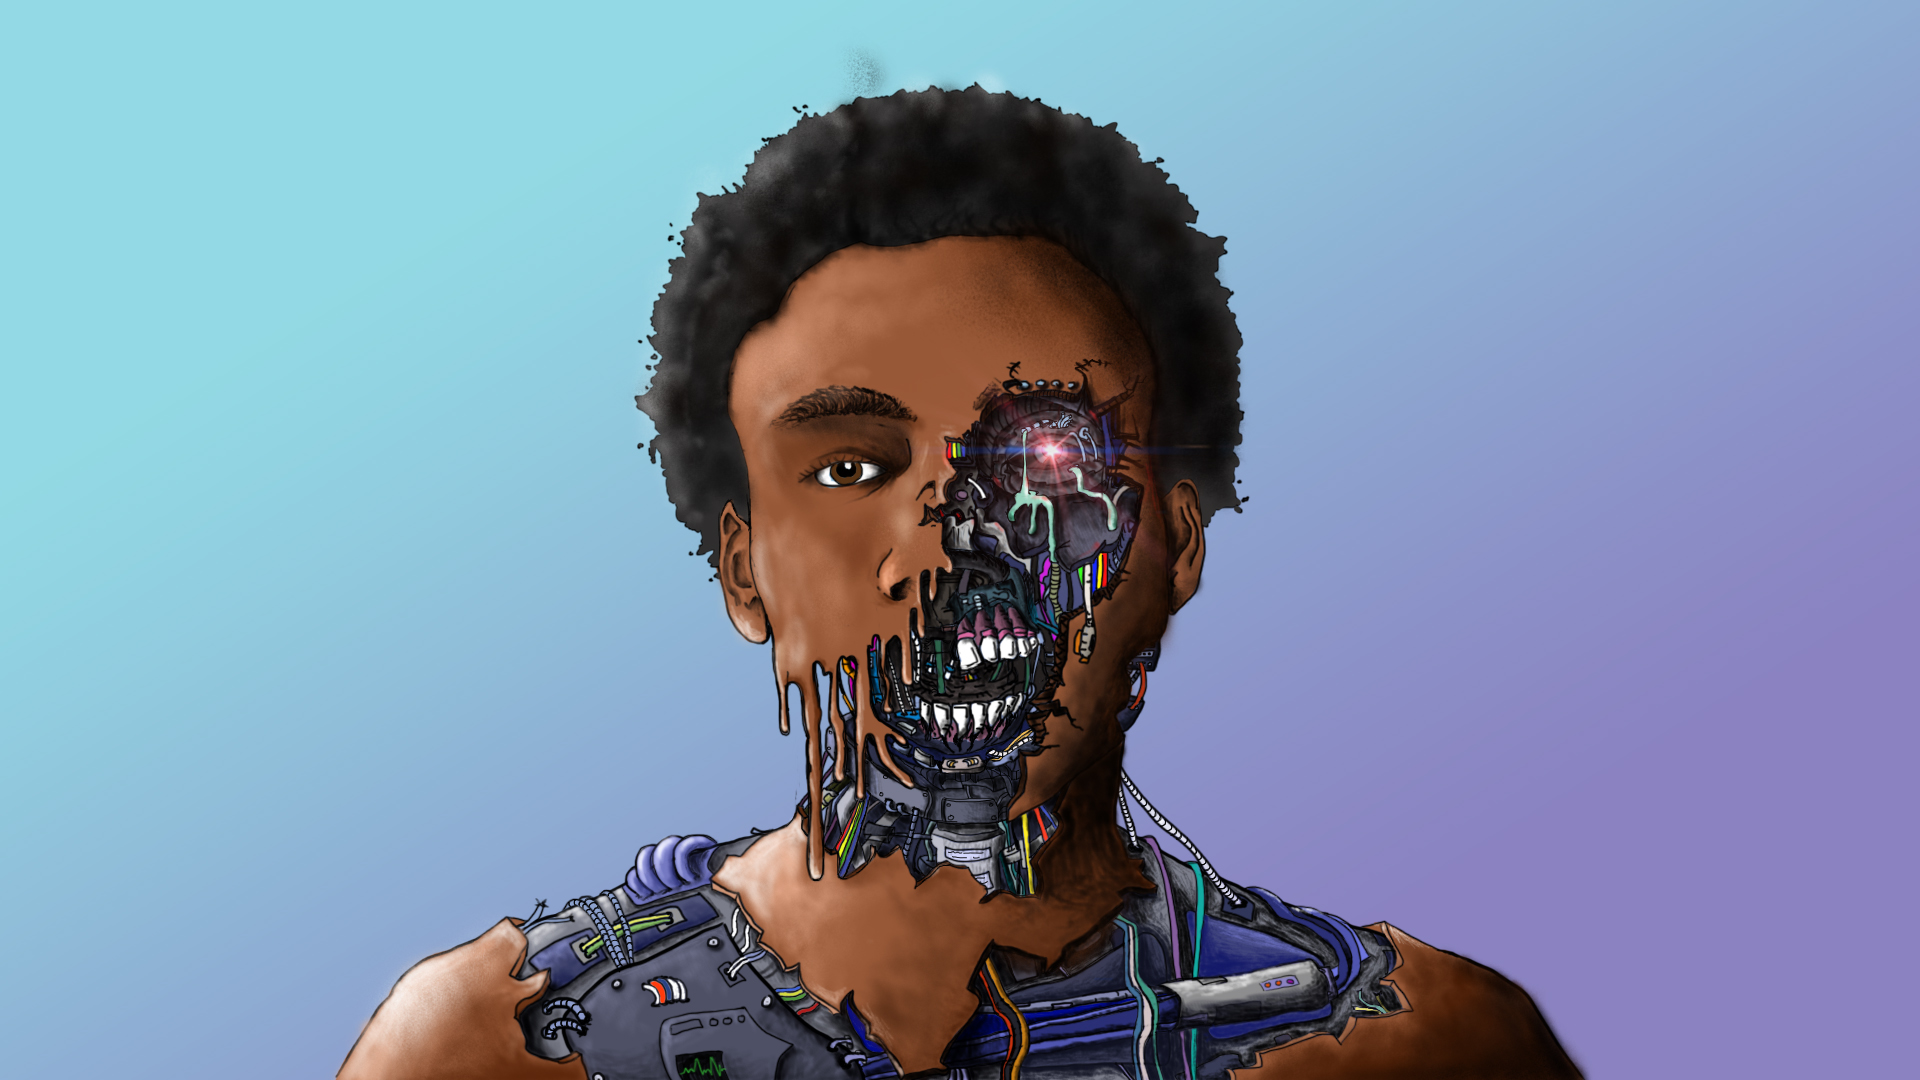 Childish Gambino Cyborg by brycecoulson on DeviantArt